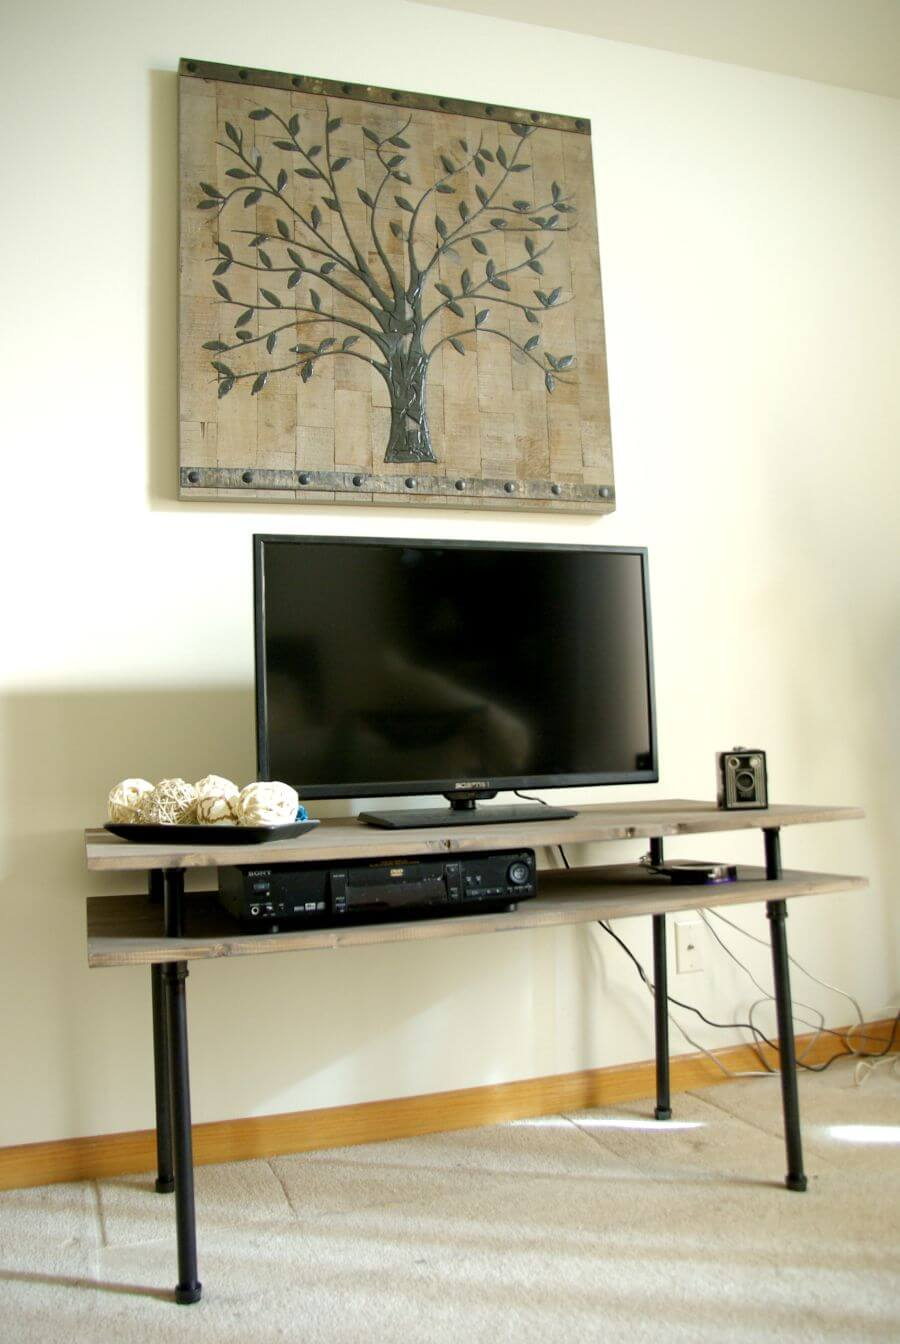 50 creative diy tv stand ideas for your room interior diy design decor. Black Bedroom Furniture Sets. Home Design Ideas